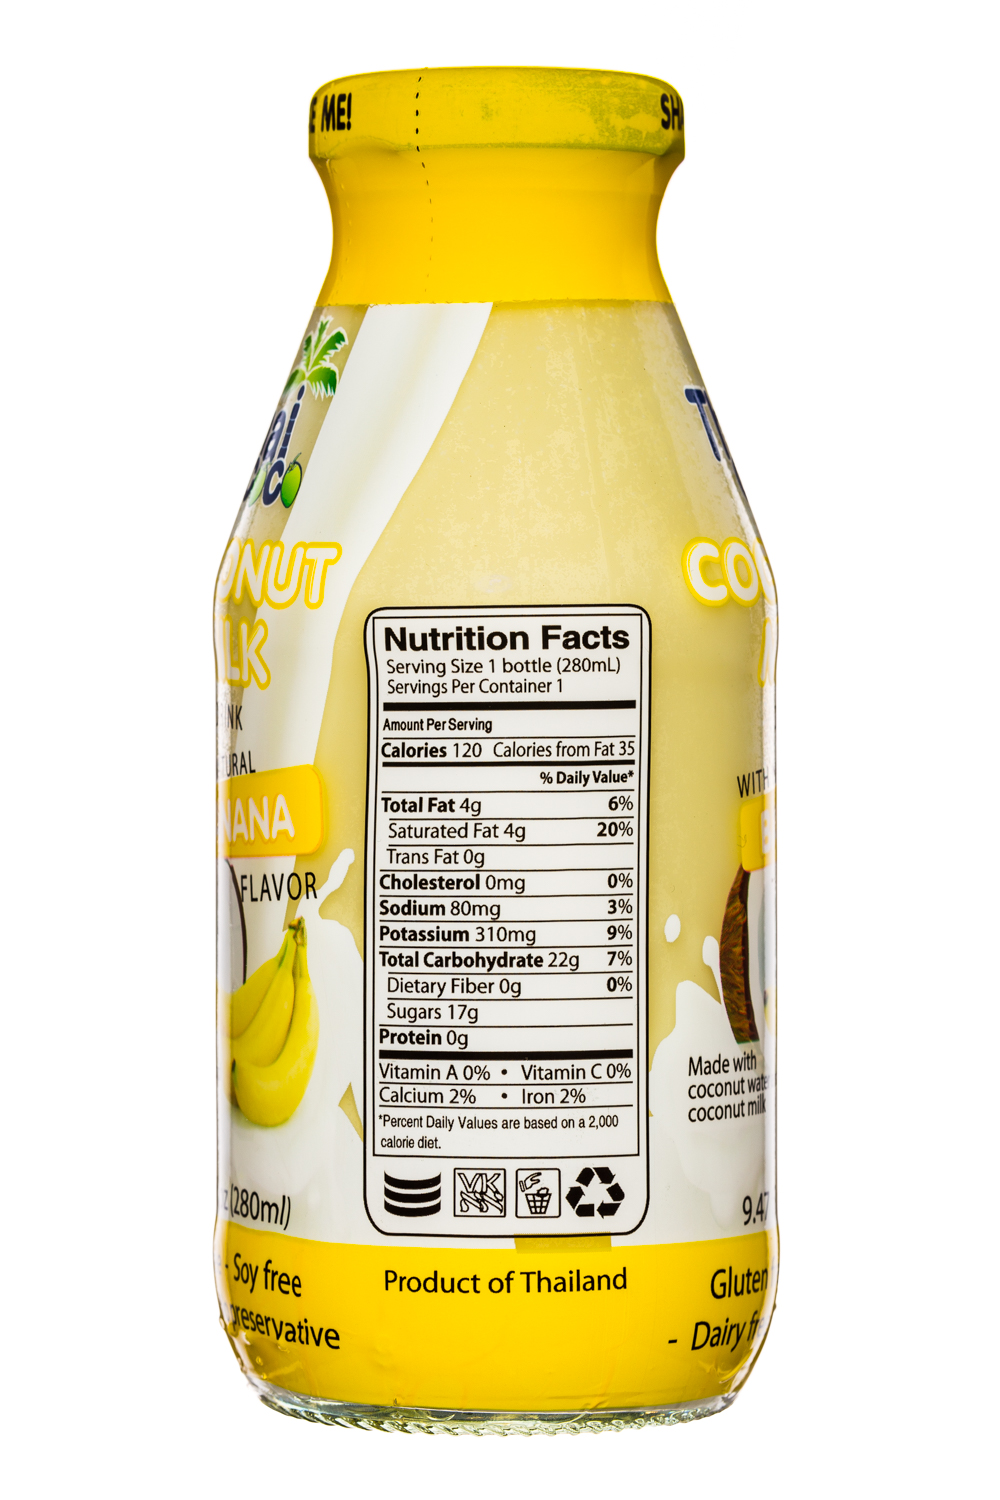 Thai Coco: ThaiCoco-CoconutMilk-9oz-Banana-Facts